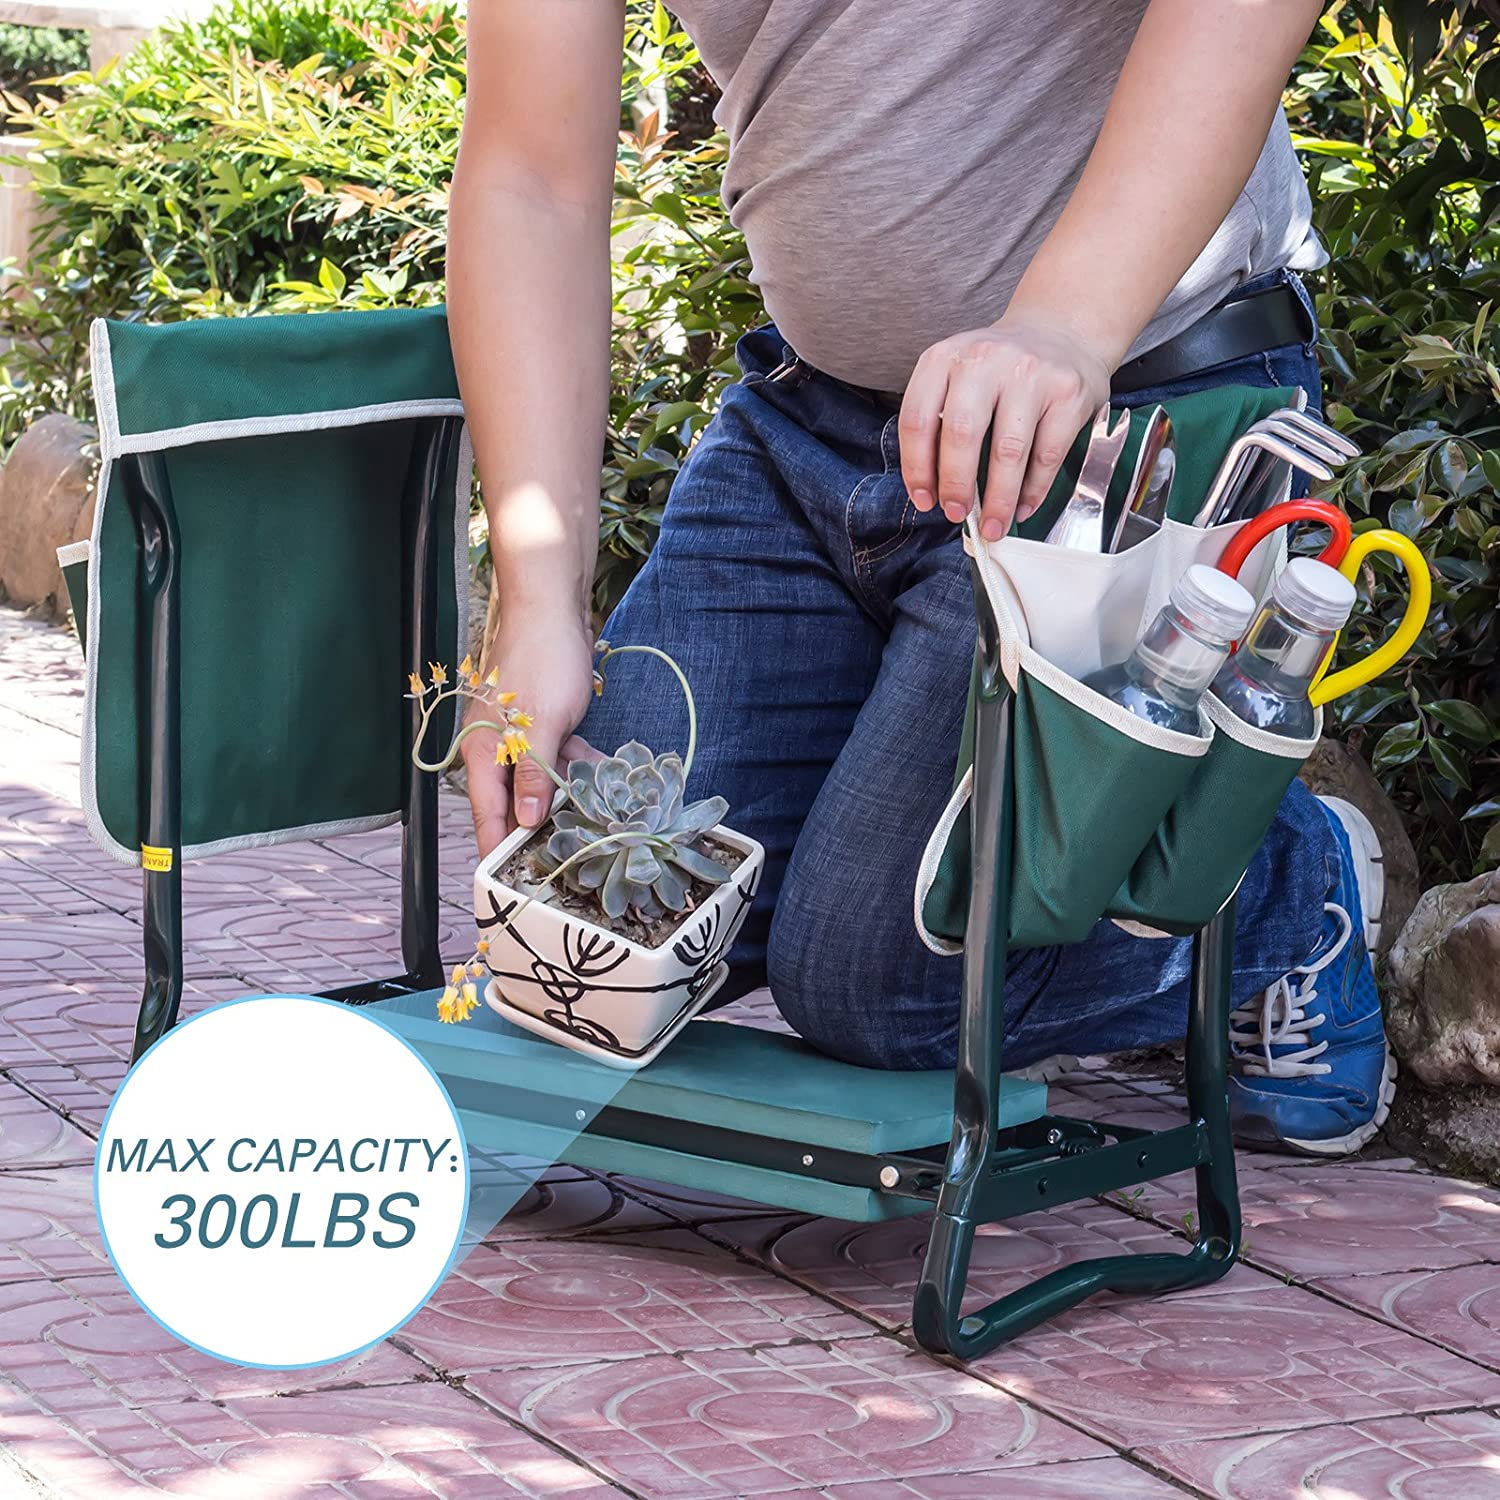 Protect Your Knees and Clothes 4-EVER Garden Kneeler Seat Multiuse Foldable Garden Bench with 2 Large Tool Pouch EVA Foam Pad Sturdy Build Gardeners Foldable Kneeler 2 in 1 Design